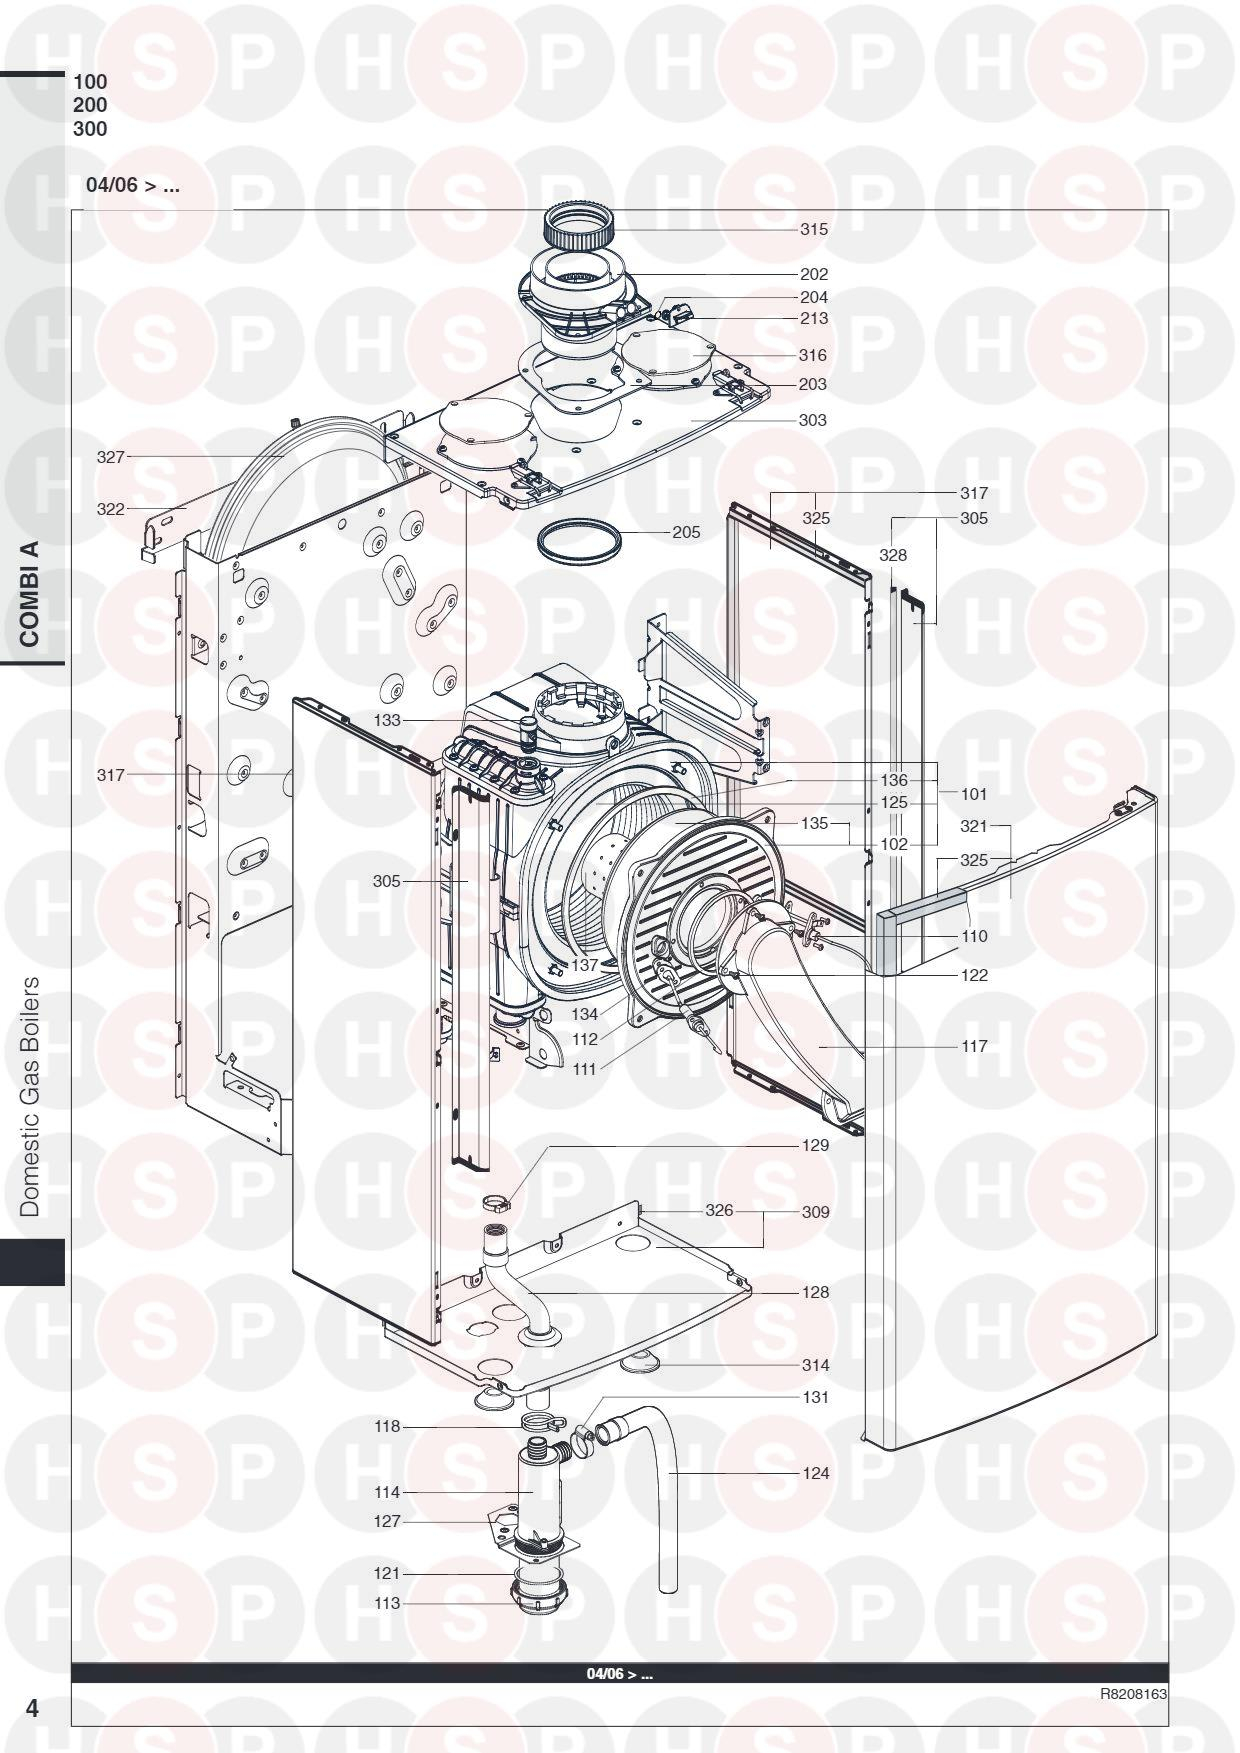 BURNER FROM 04/06 diagram for Ariston COMBI A 24 MFFI (28/06/2013)